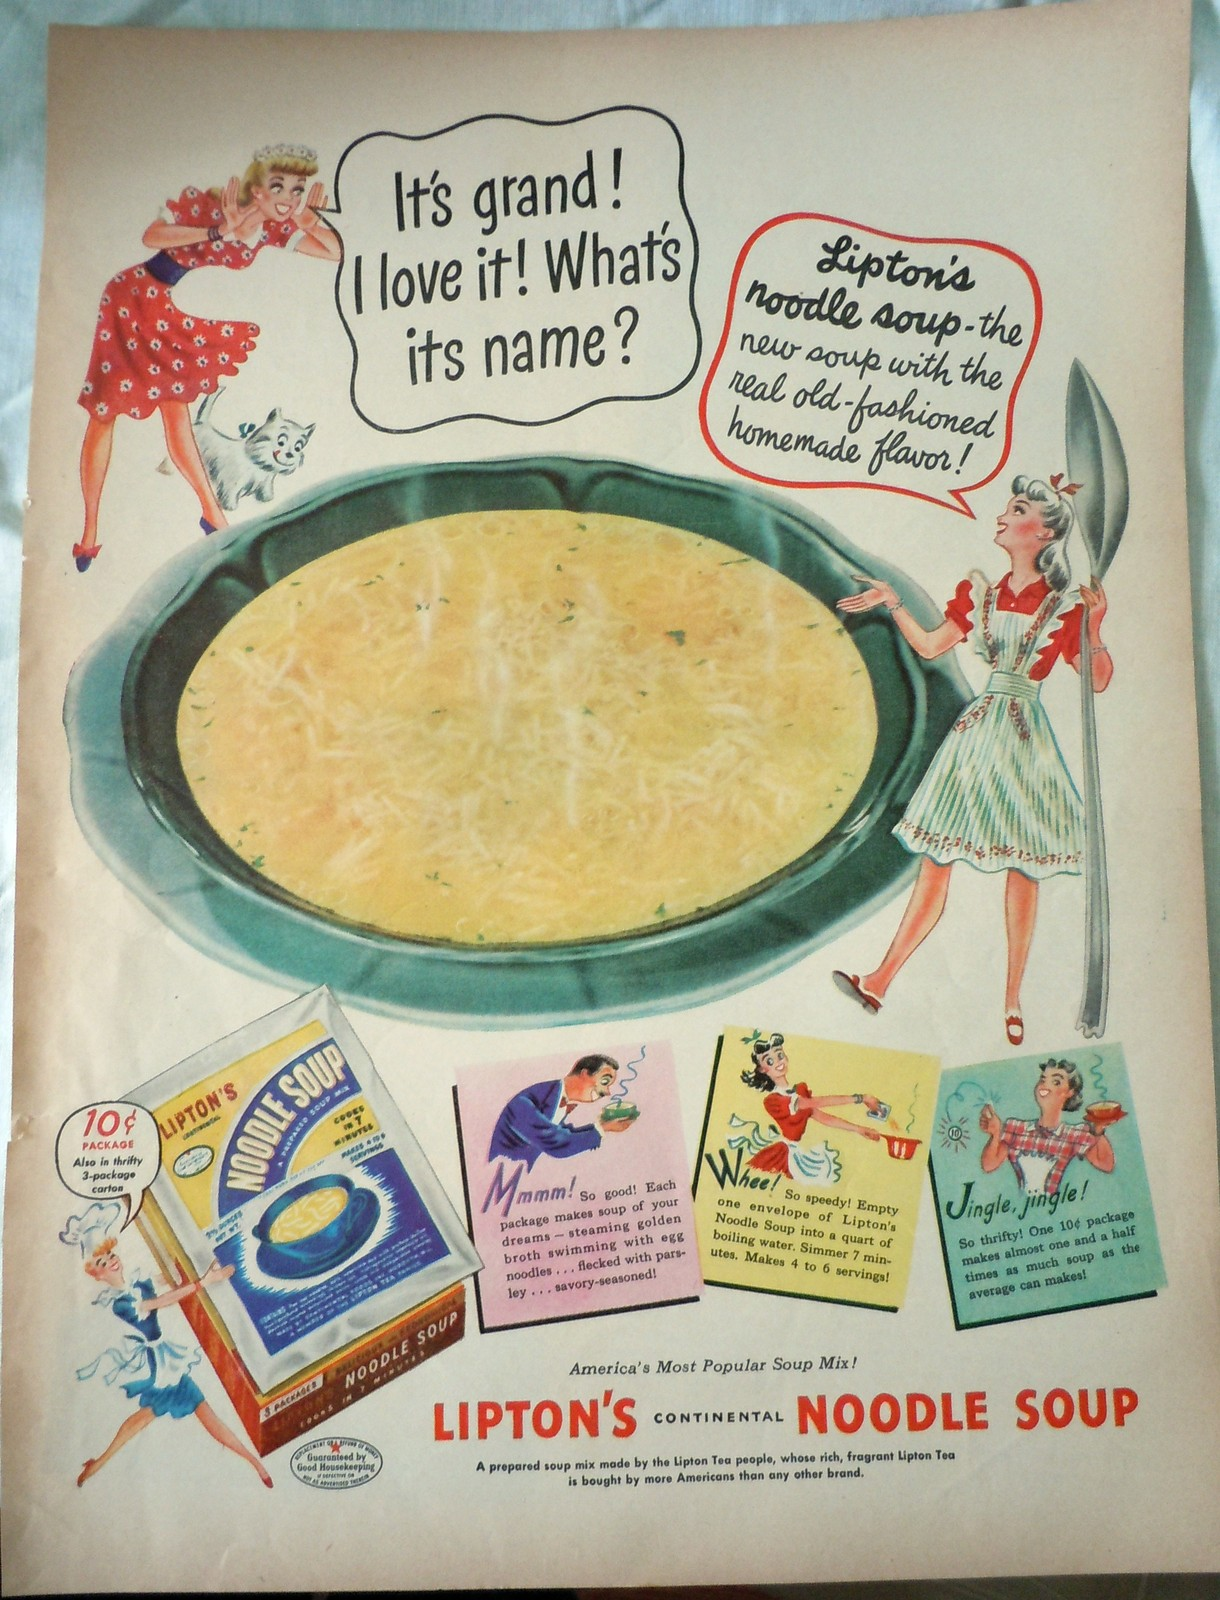 LIpton's Continental Noodle Soup Advertising Print Ad Art 1940s